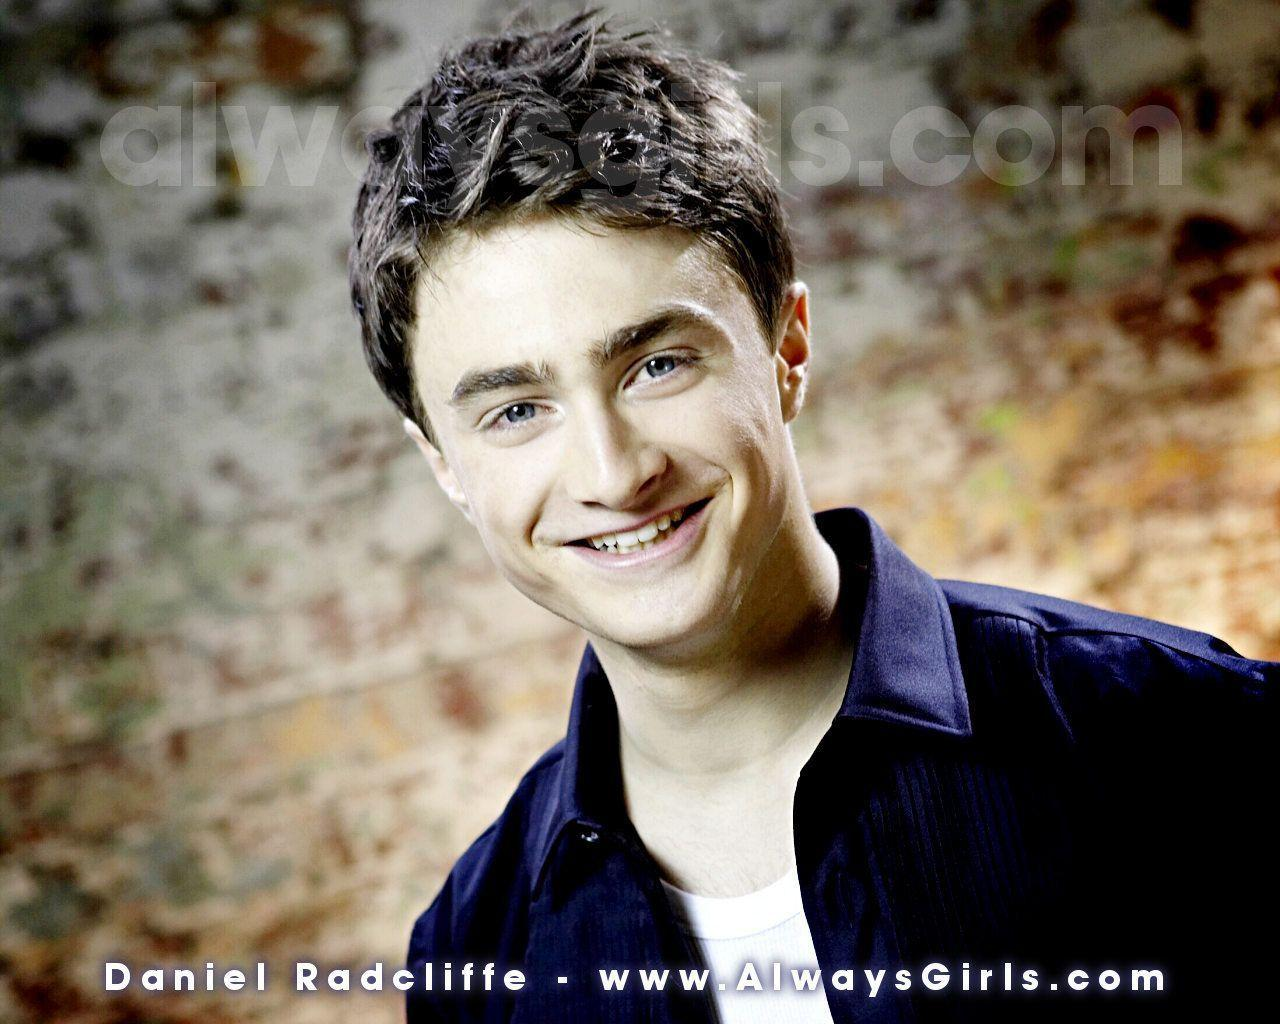 radcliffe hd wallpapers num2 - photo #15